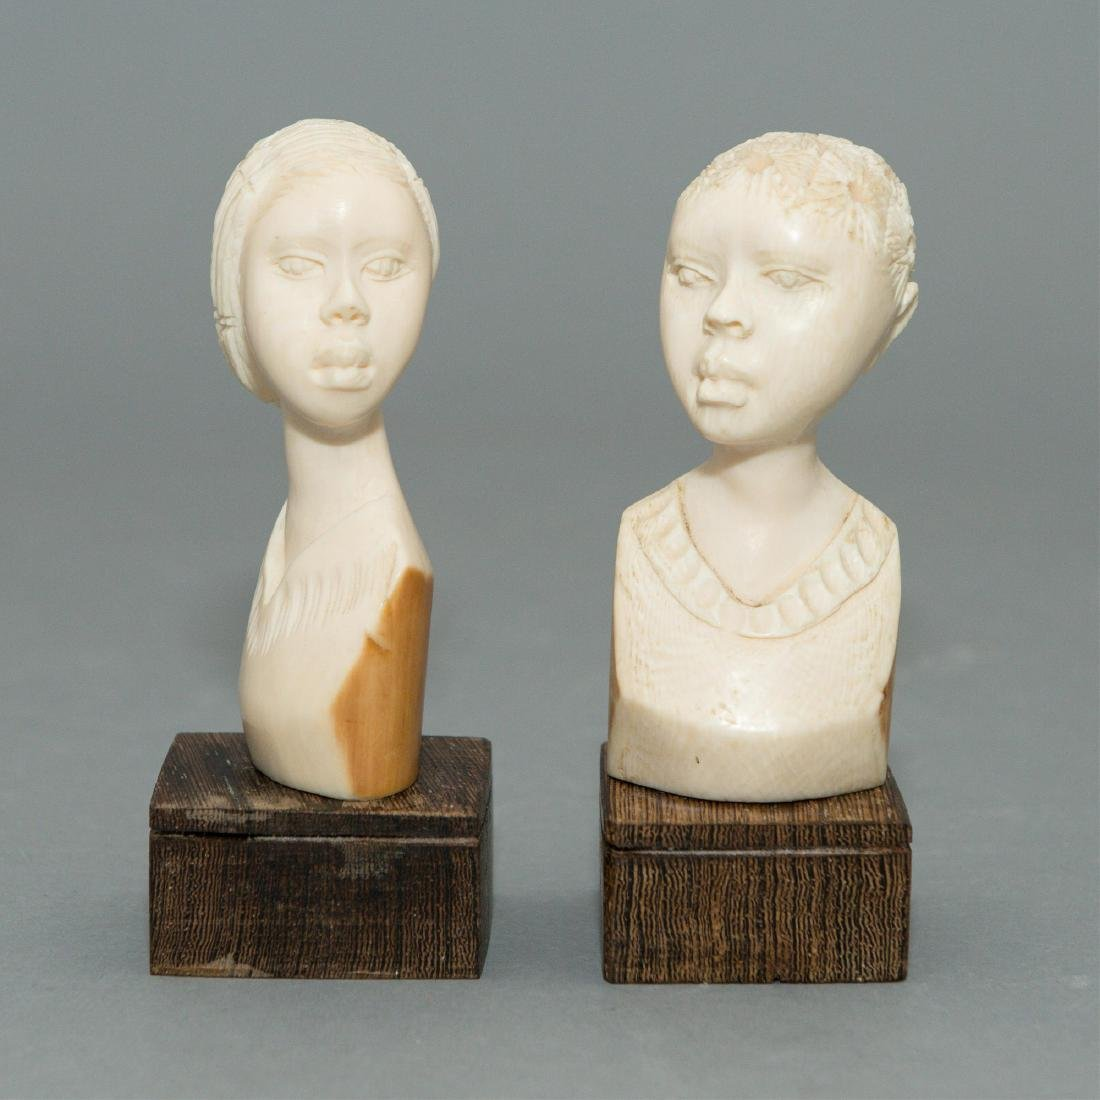 PAIR OF CARVED AFRICAN IVORY BUSTS, YOUNG WOMEN